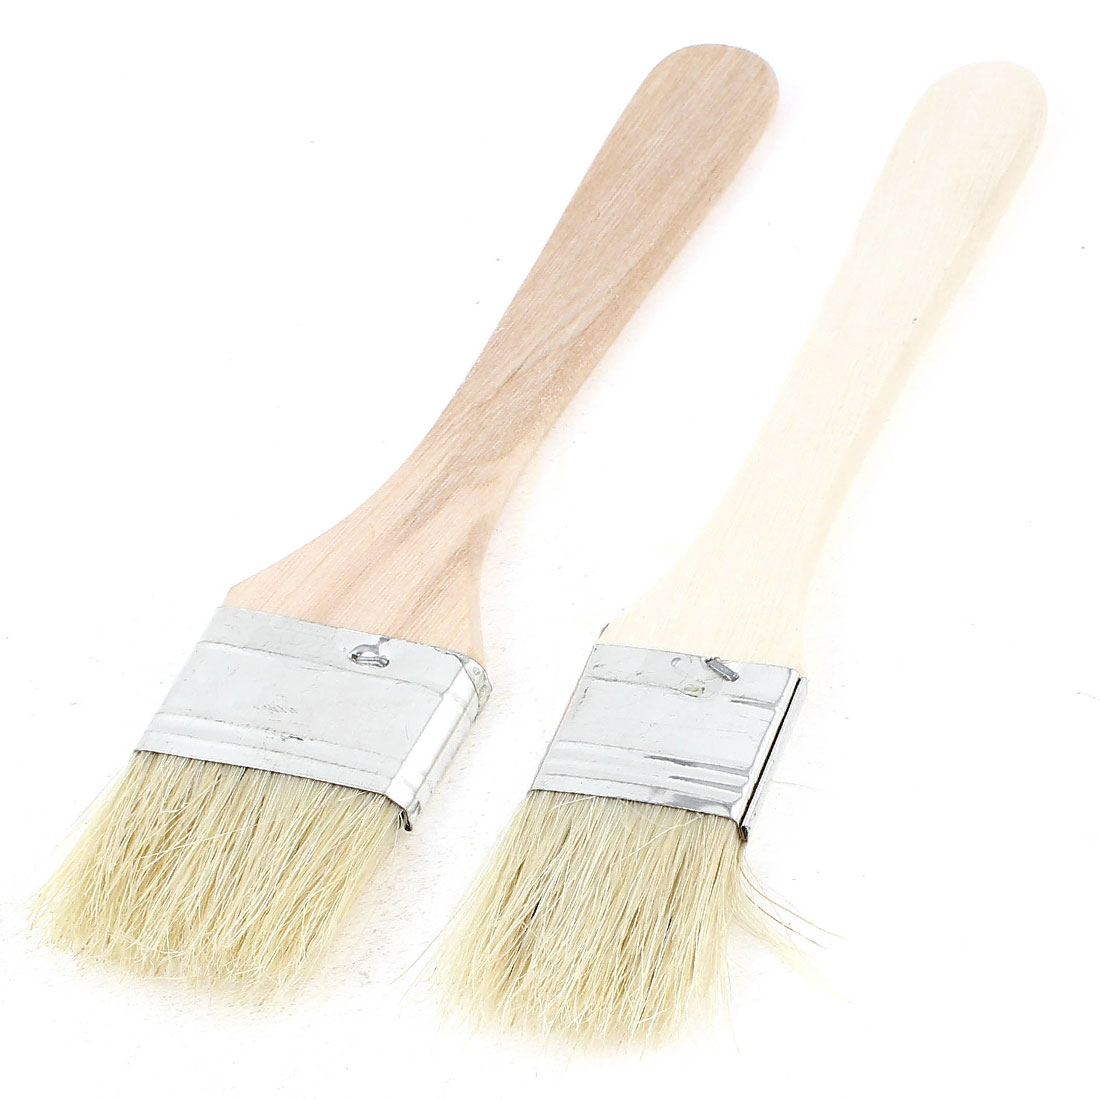 "Drawing Tool Wooden Handle Pig Bristle Paint Brush 7.3"" Long 2 Pcs"